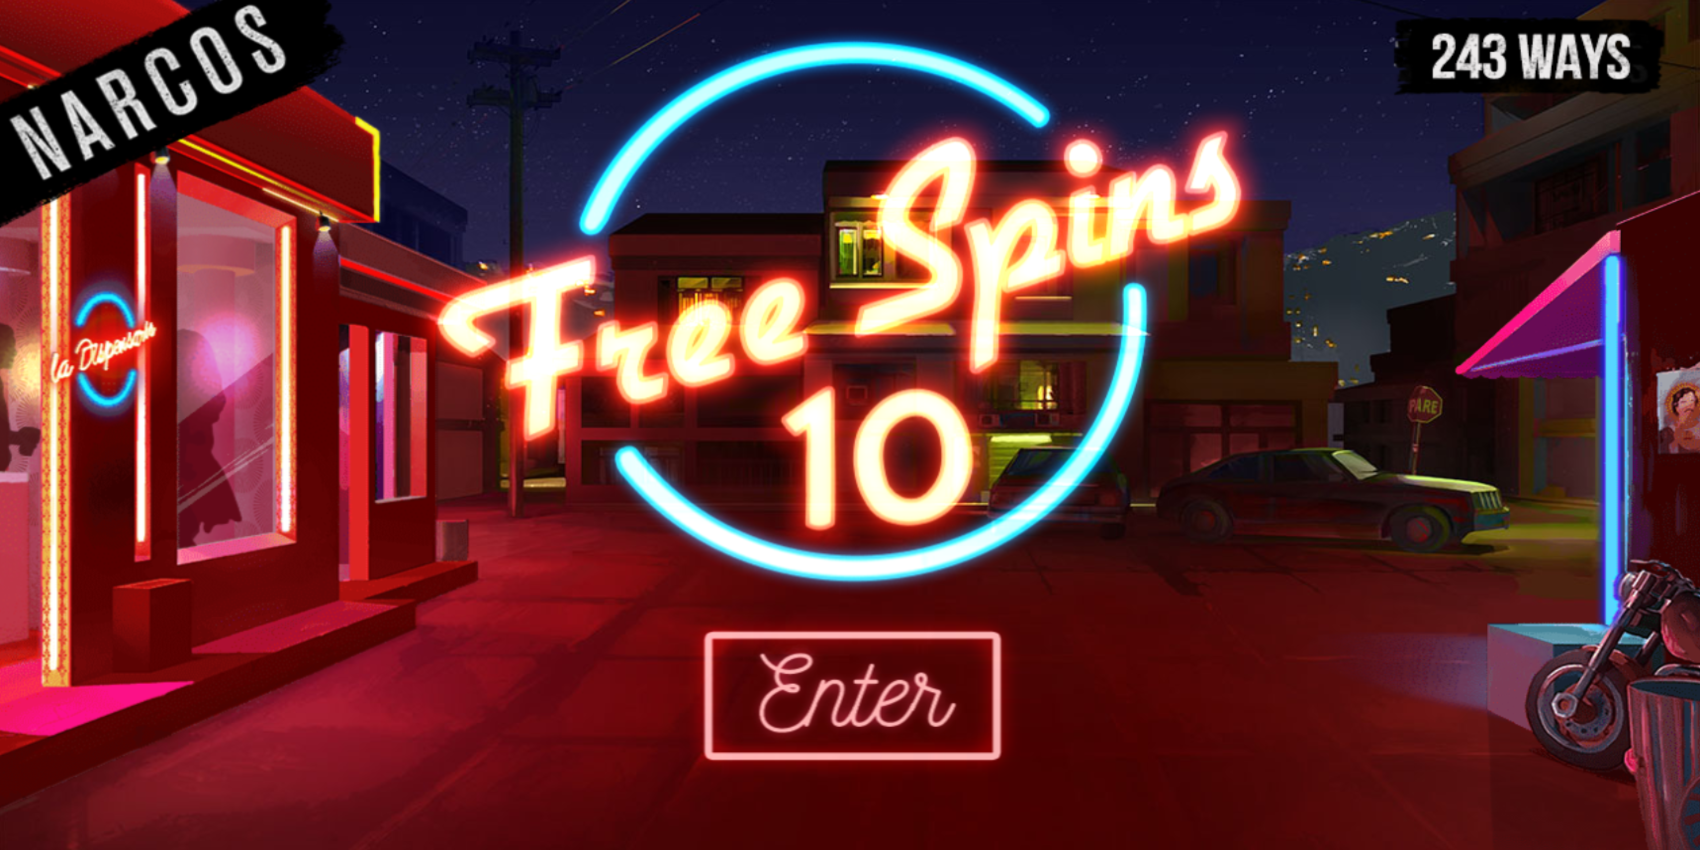 Narcos slot game 10 Free Spins Win